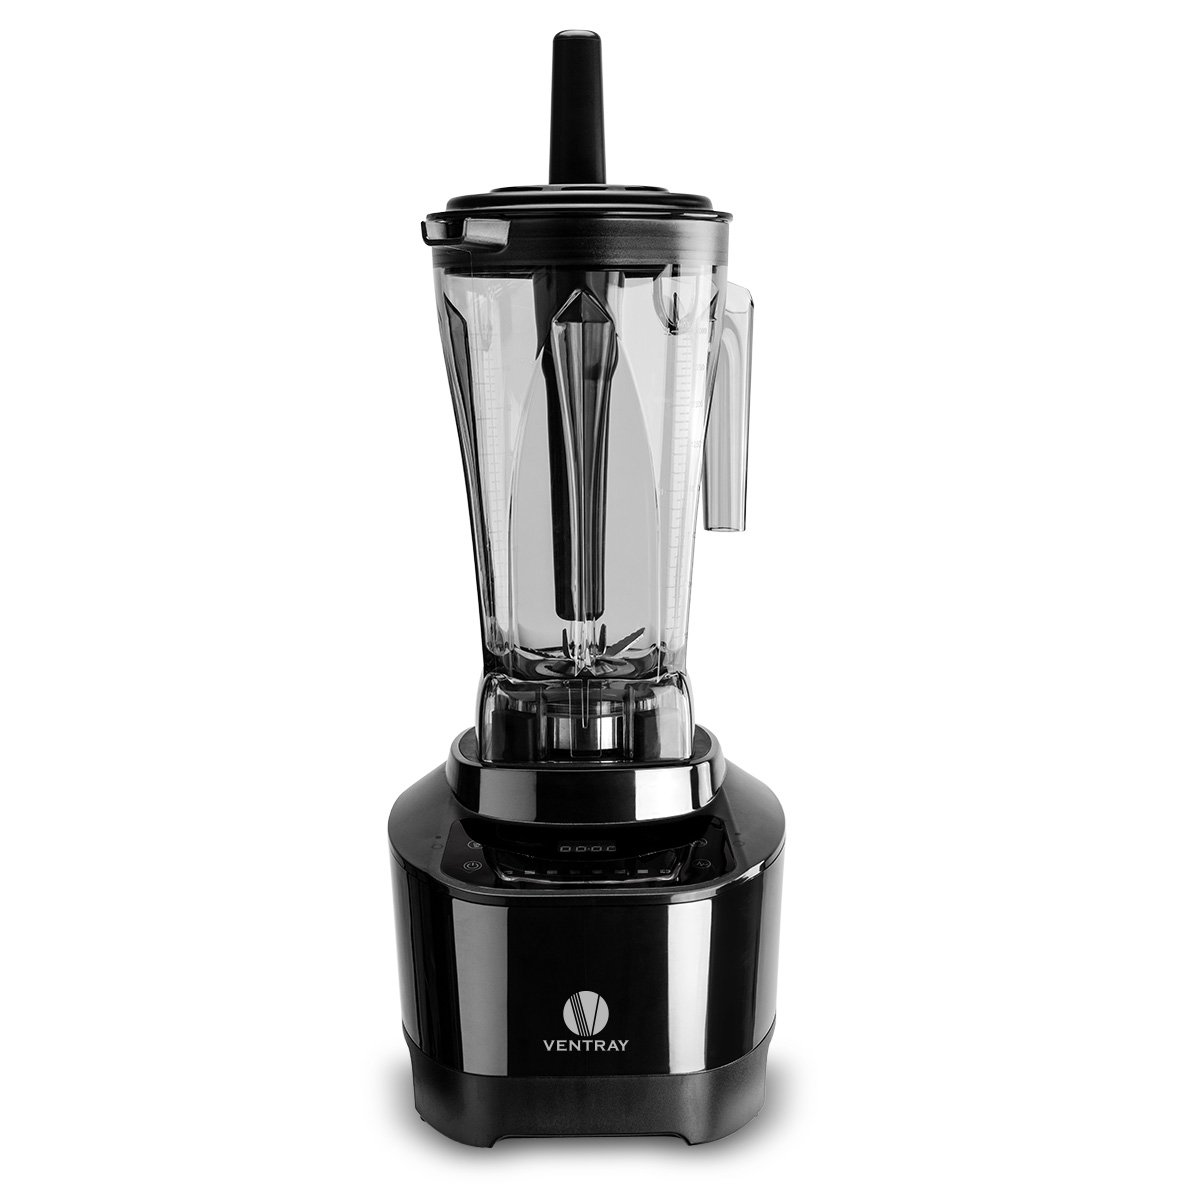 Ventray Pro 600 High Power Professional Blender 1500-watt 8-Speed 5 Programs 32oz High Speed Mixer